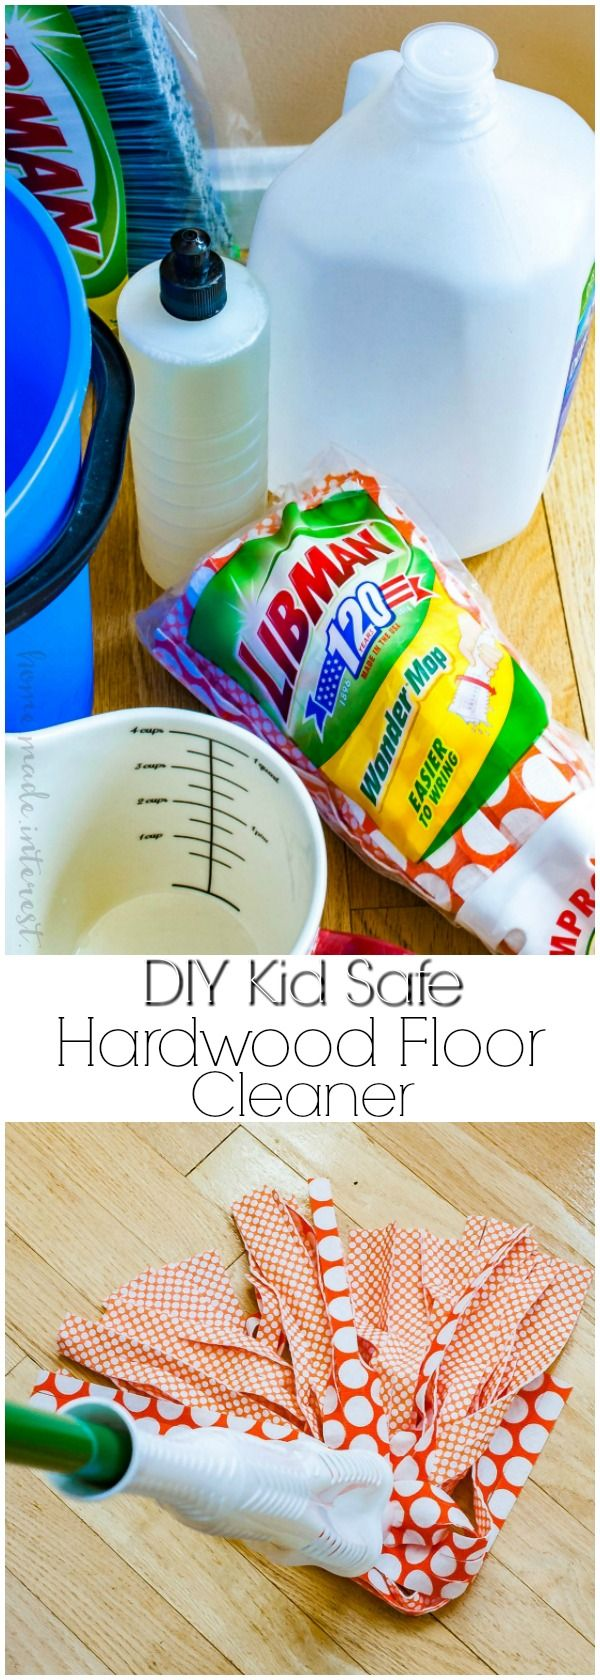 Homemade Wood Floor Cleaner for Spring Cleaning!